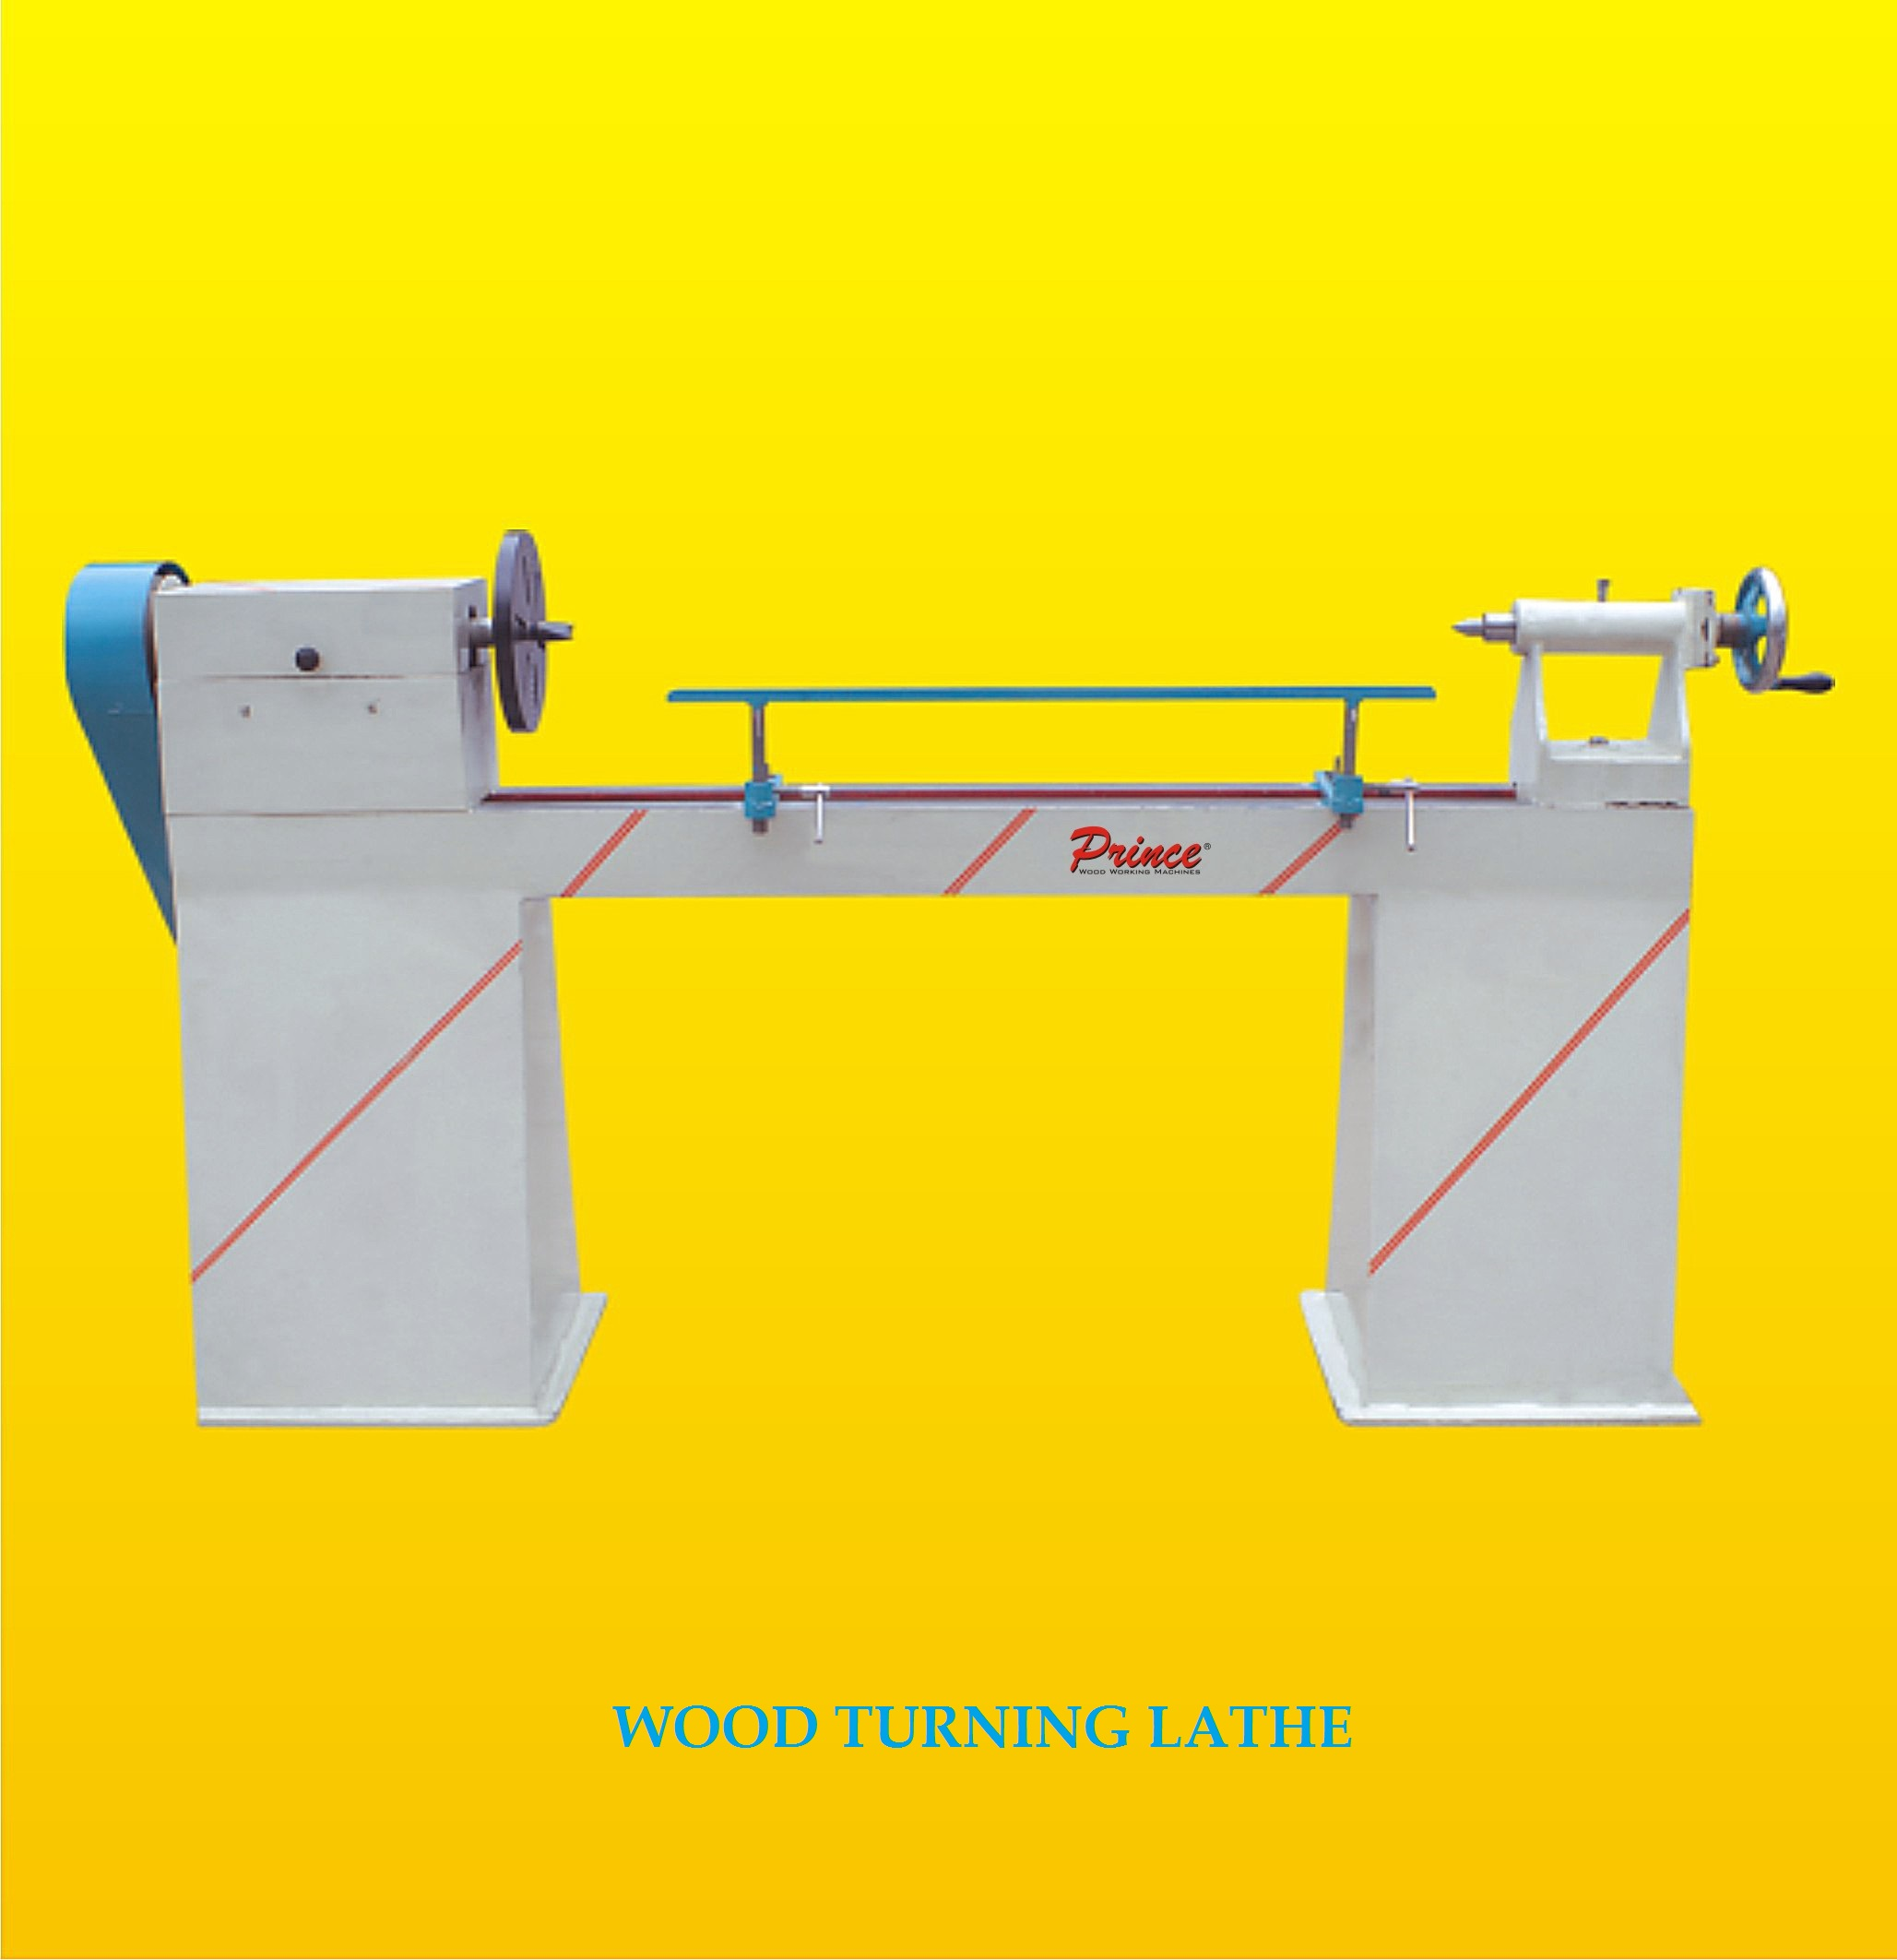 Wood Turning Lathe Machine,Wood Turning Lathe Machinery Exporters